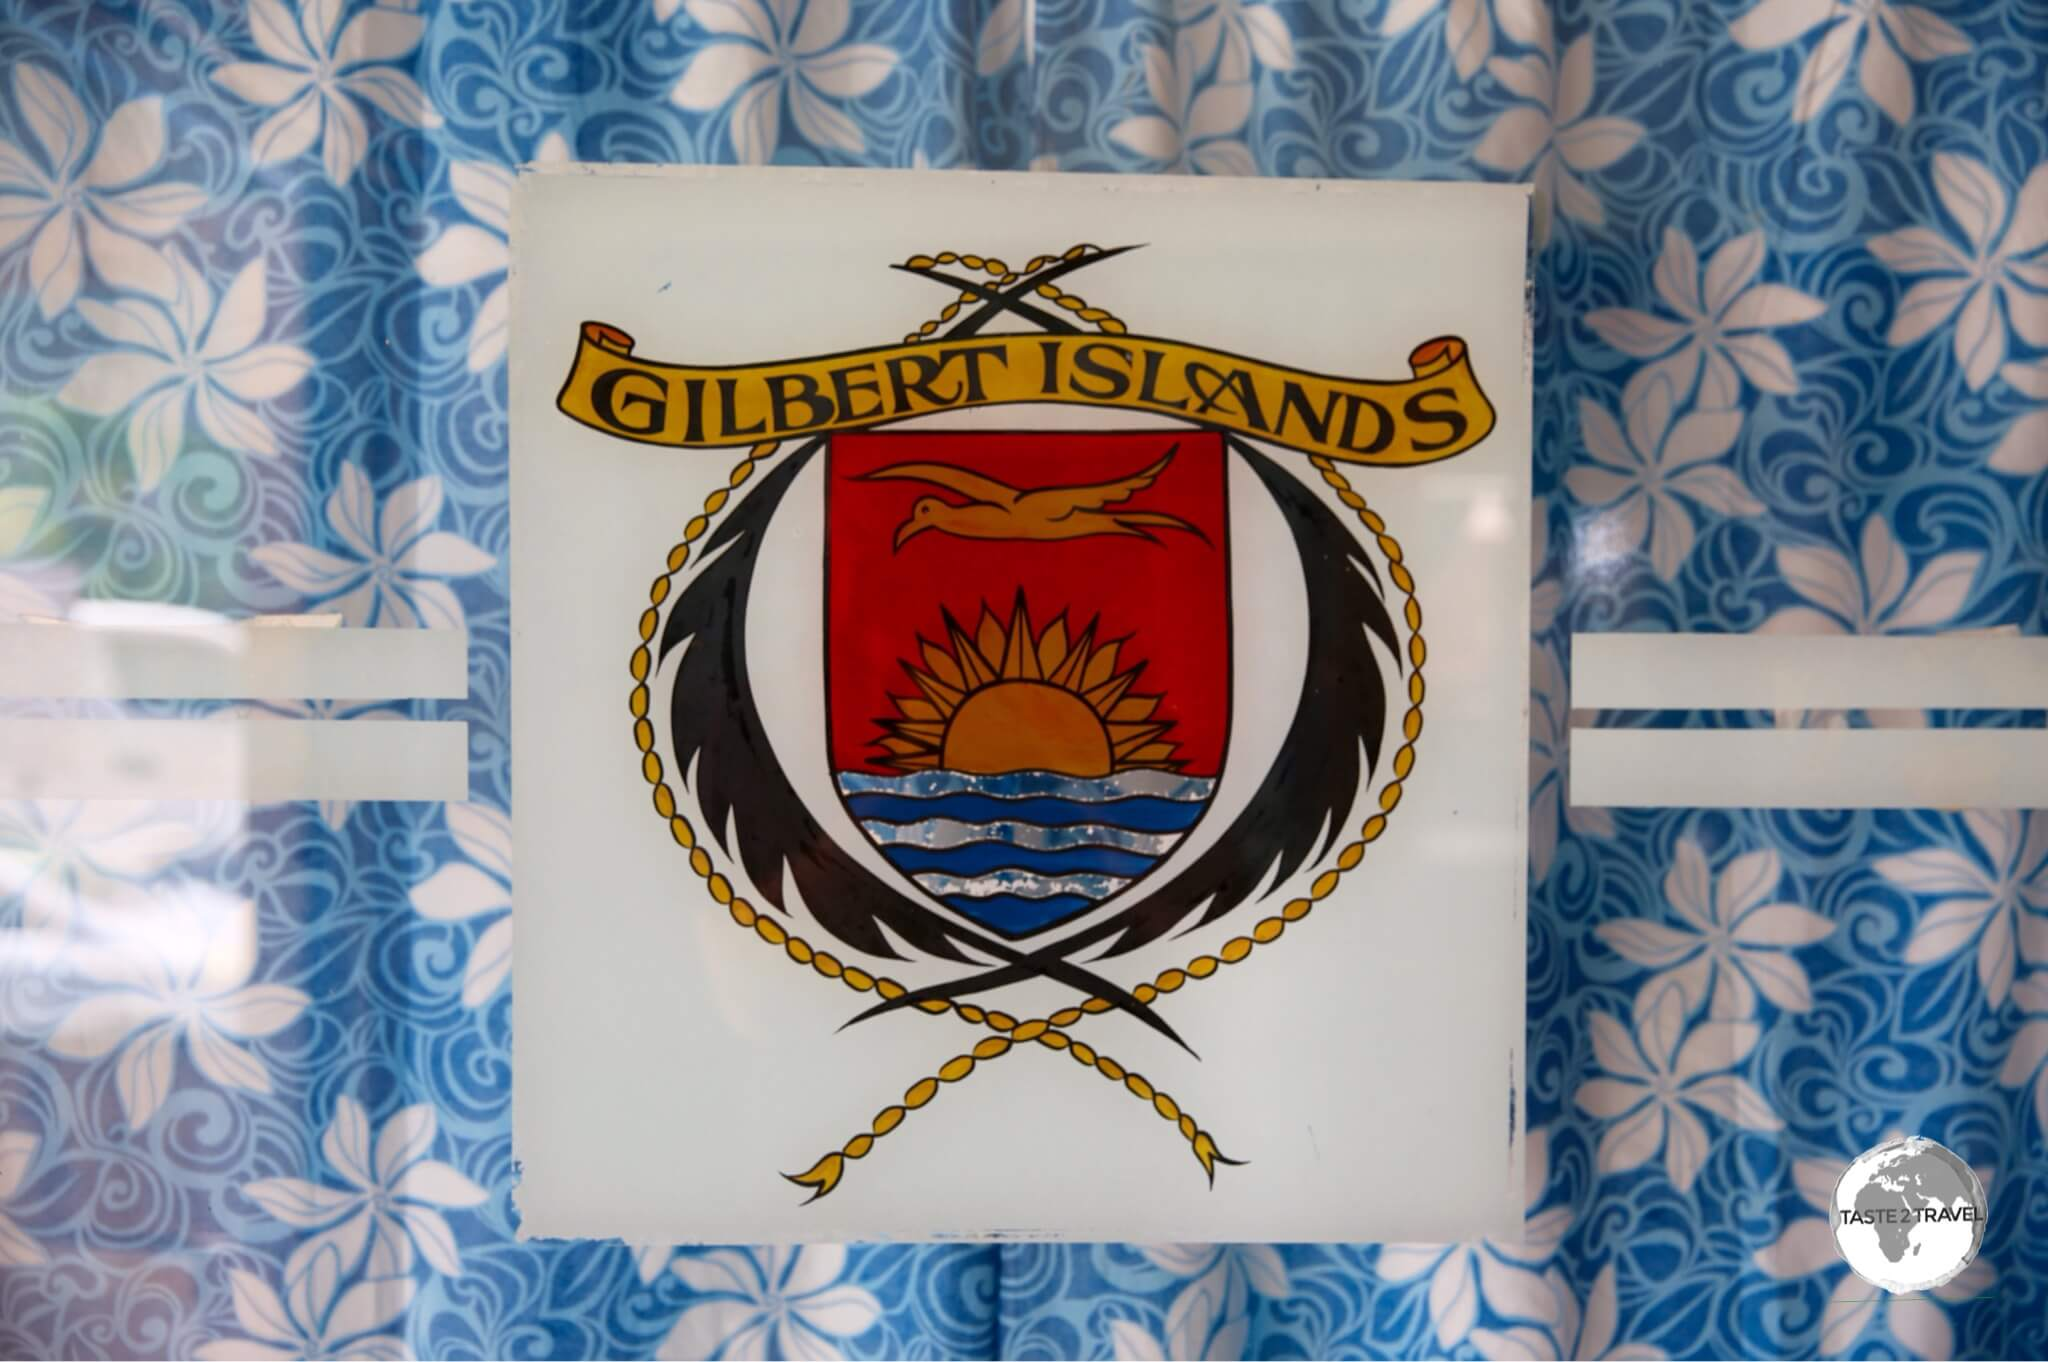 The Gilbert Islands coat of arms, displayed on the window of the General Post Office.